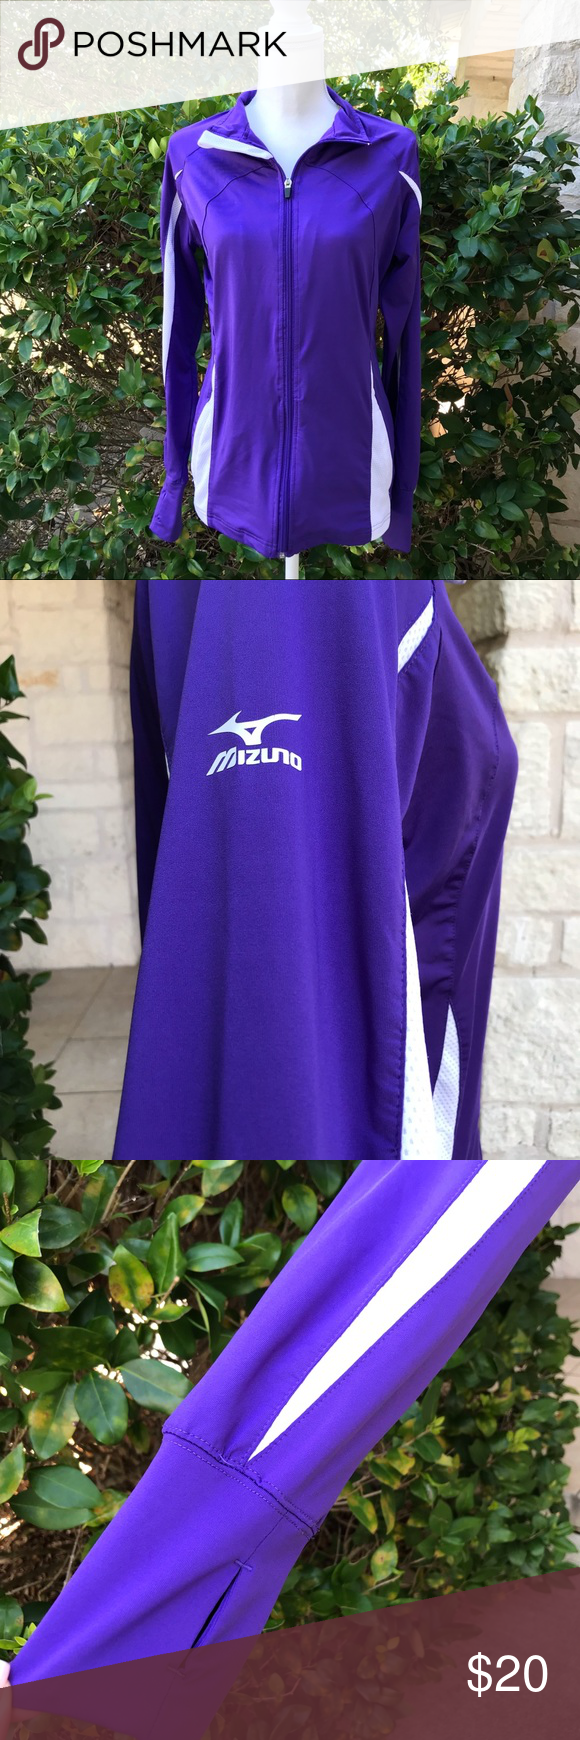 Mizuno Elite 9 Focus Full Zip Volleyball Jacket Mizuno Performance Workout Jacket Purple White Size M Pet Free And Smoke Free Home Offers And Bundles Are W